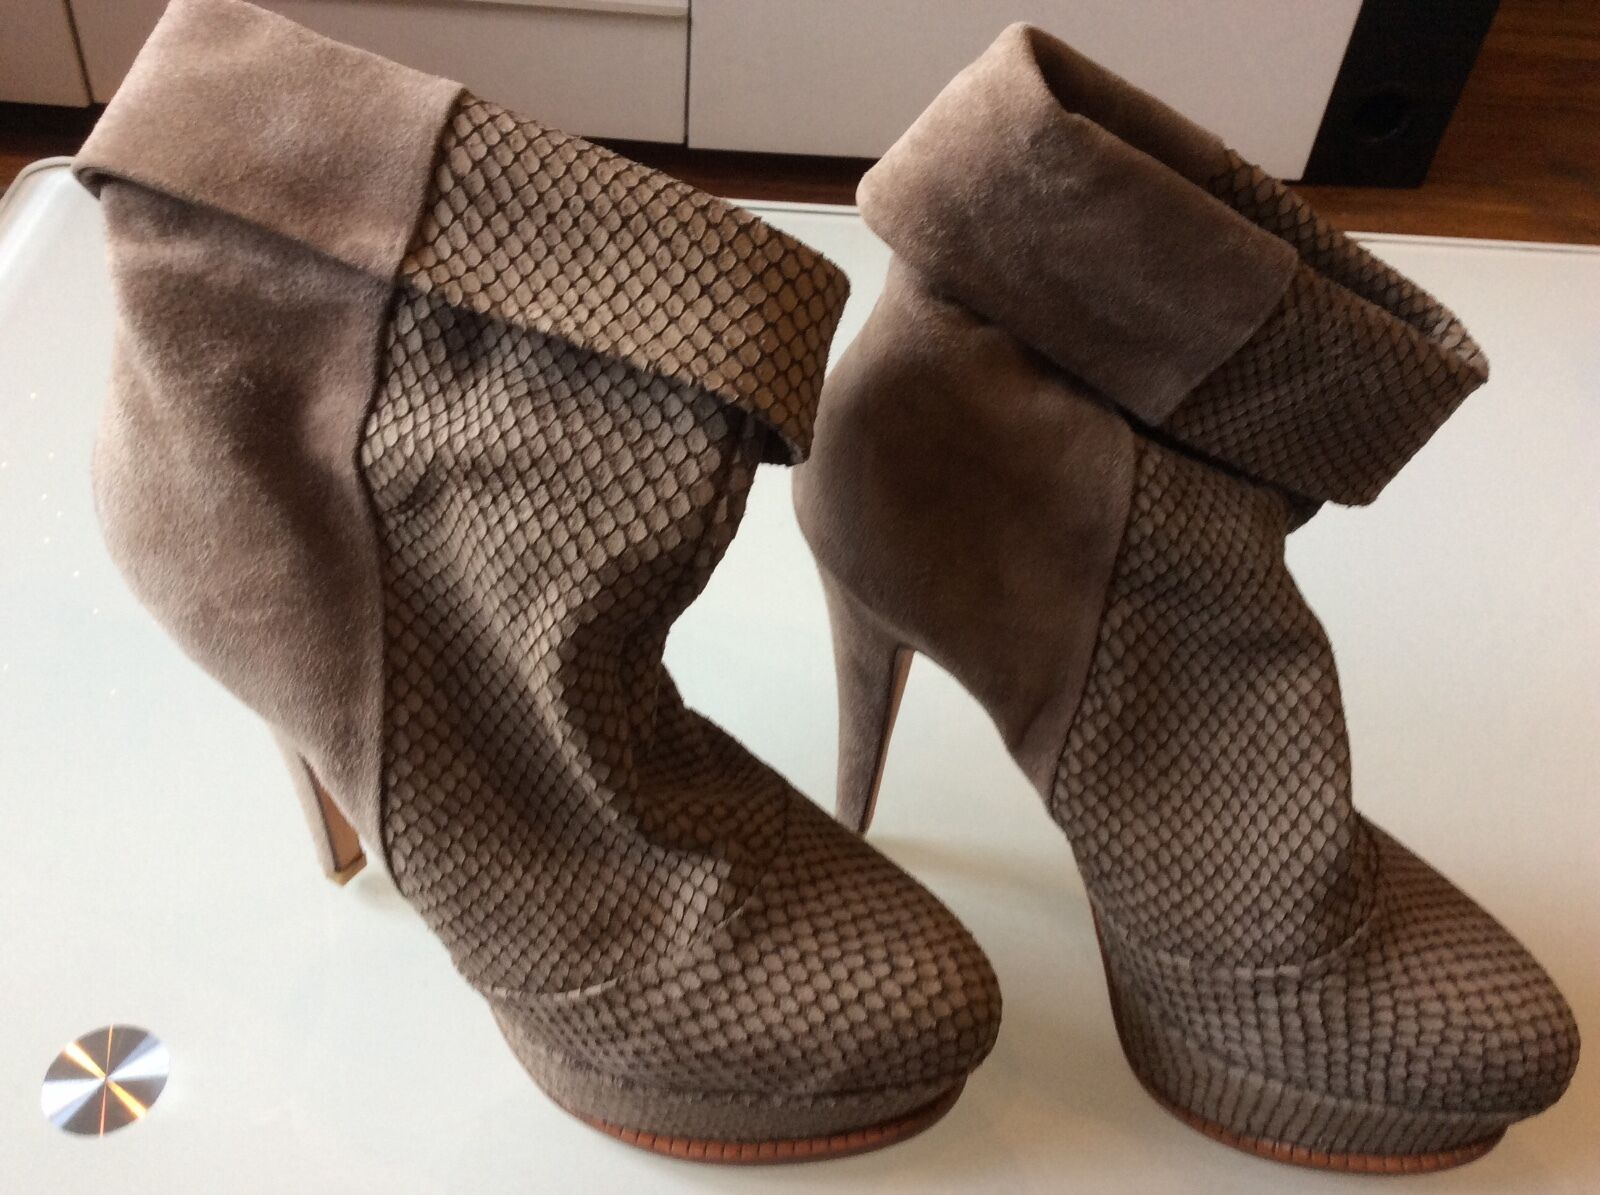 Dolce vita women's taupe  suede high heels/platforms  boots  size 6.5  78.00